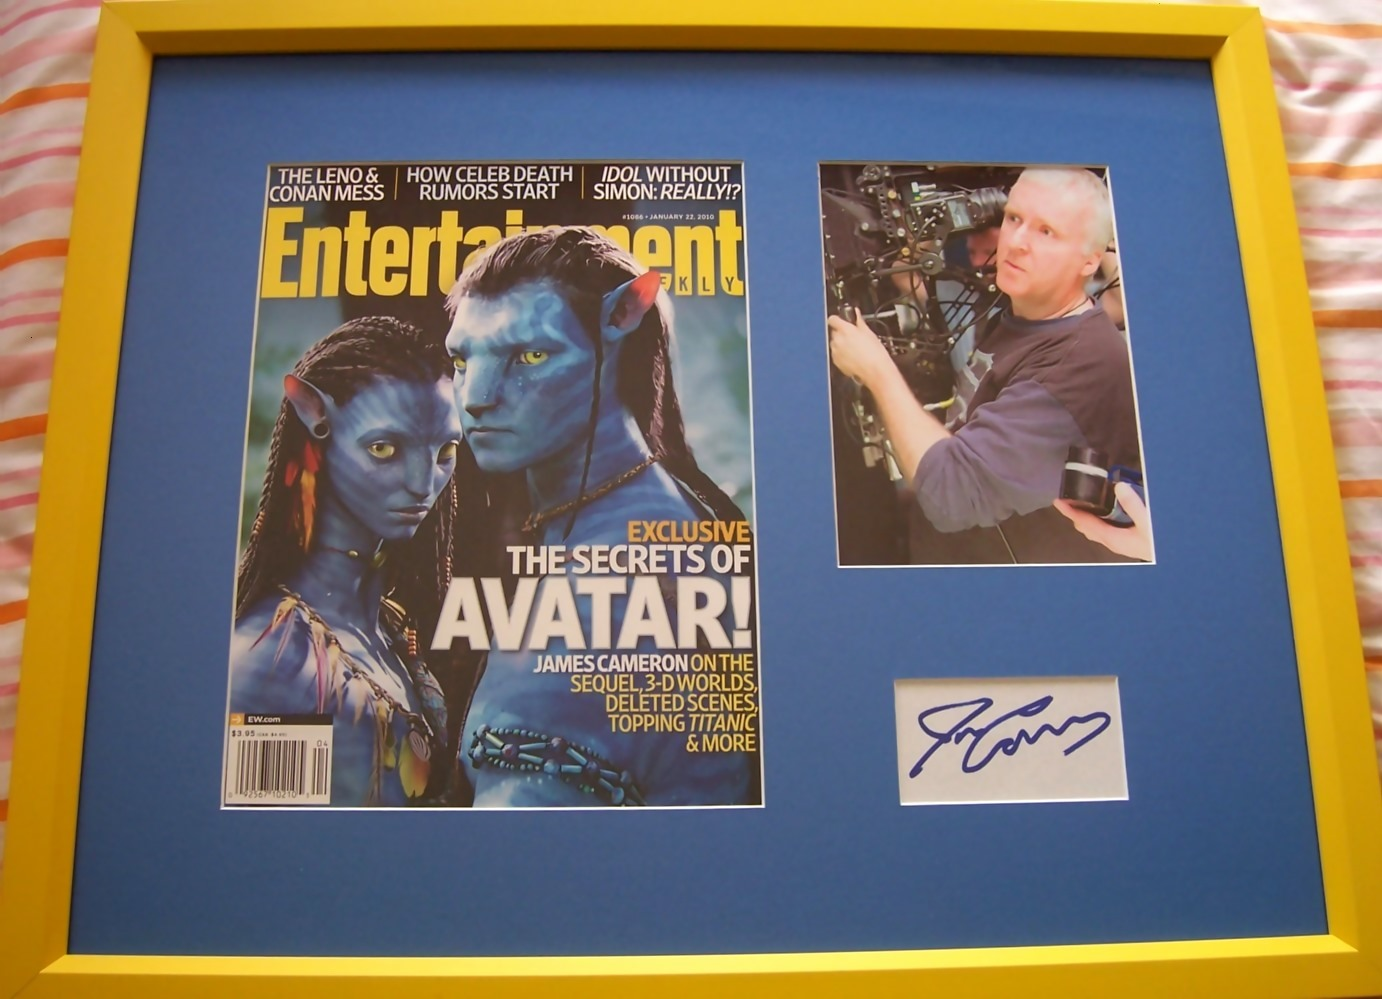 James Cameron autograph matted and framed